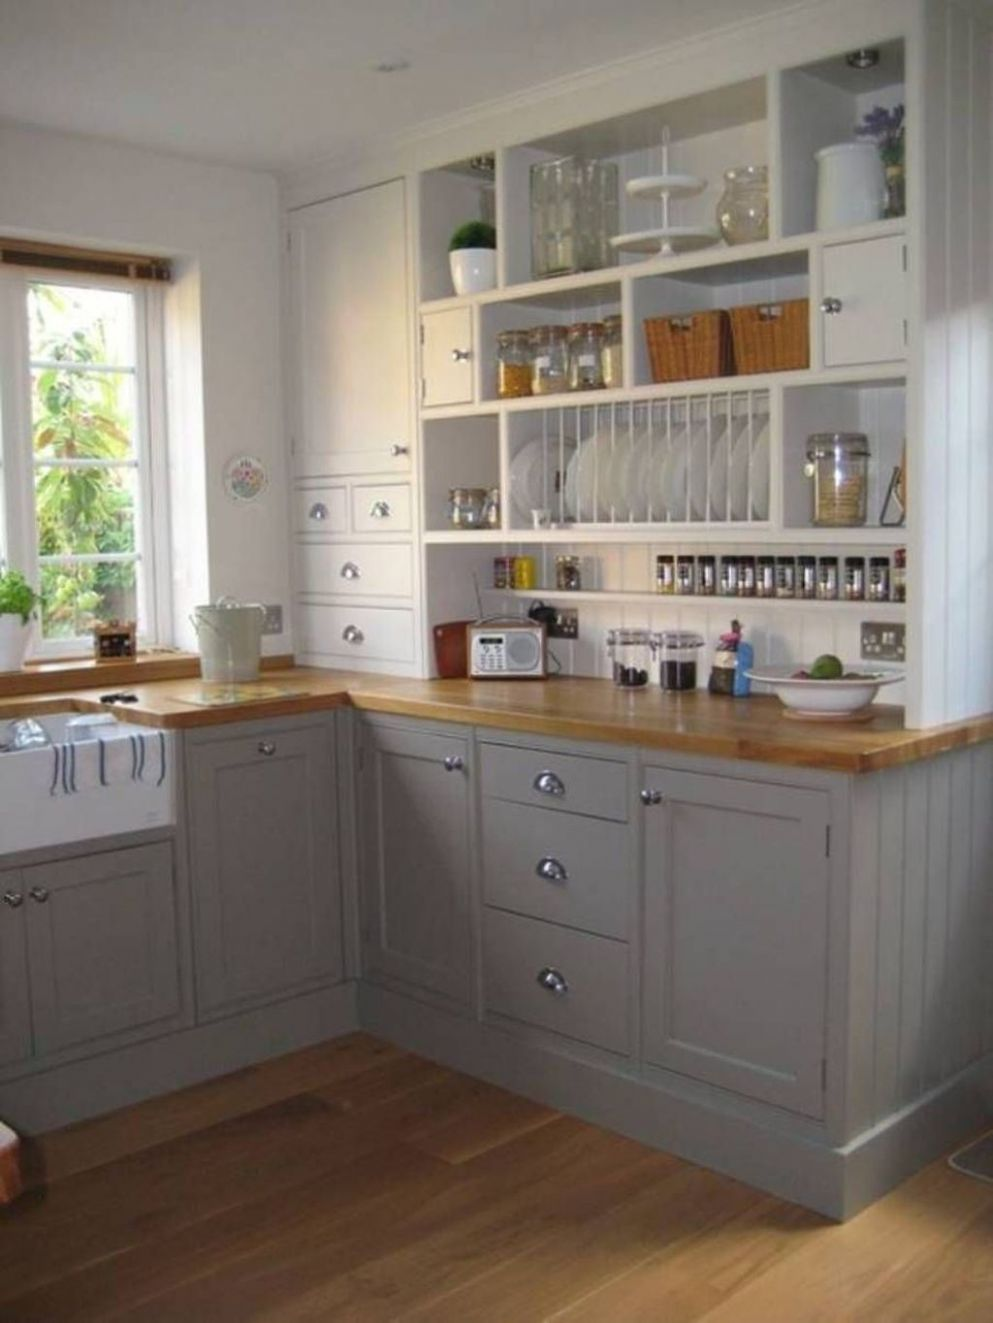 small galley kitchen ideas uk | Kitchen design small, Kitchen ..